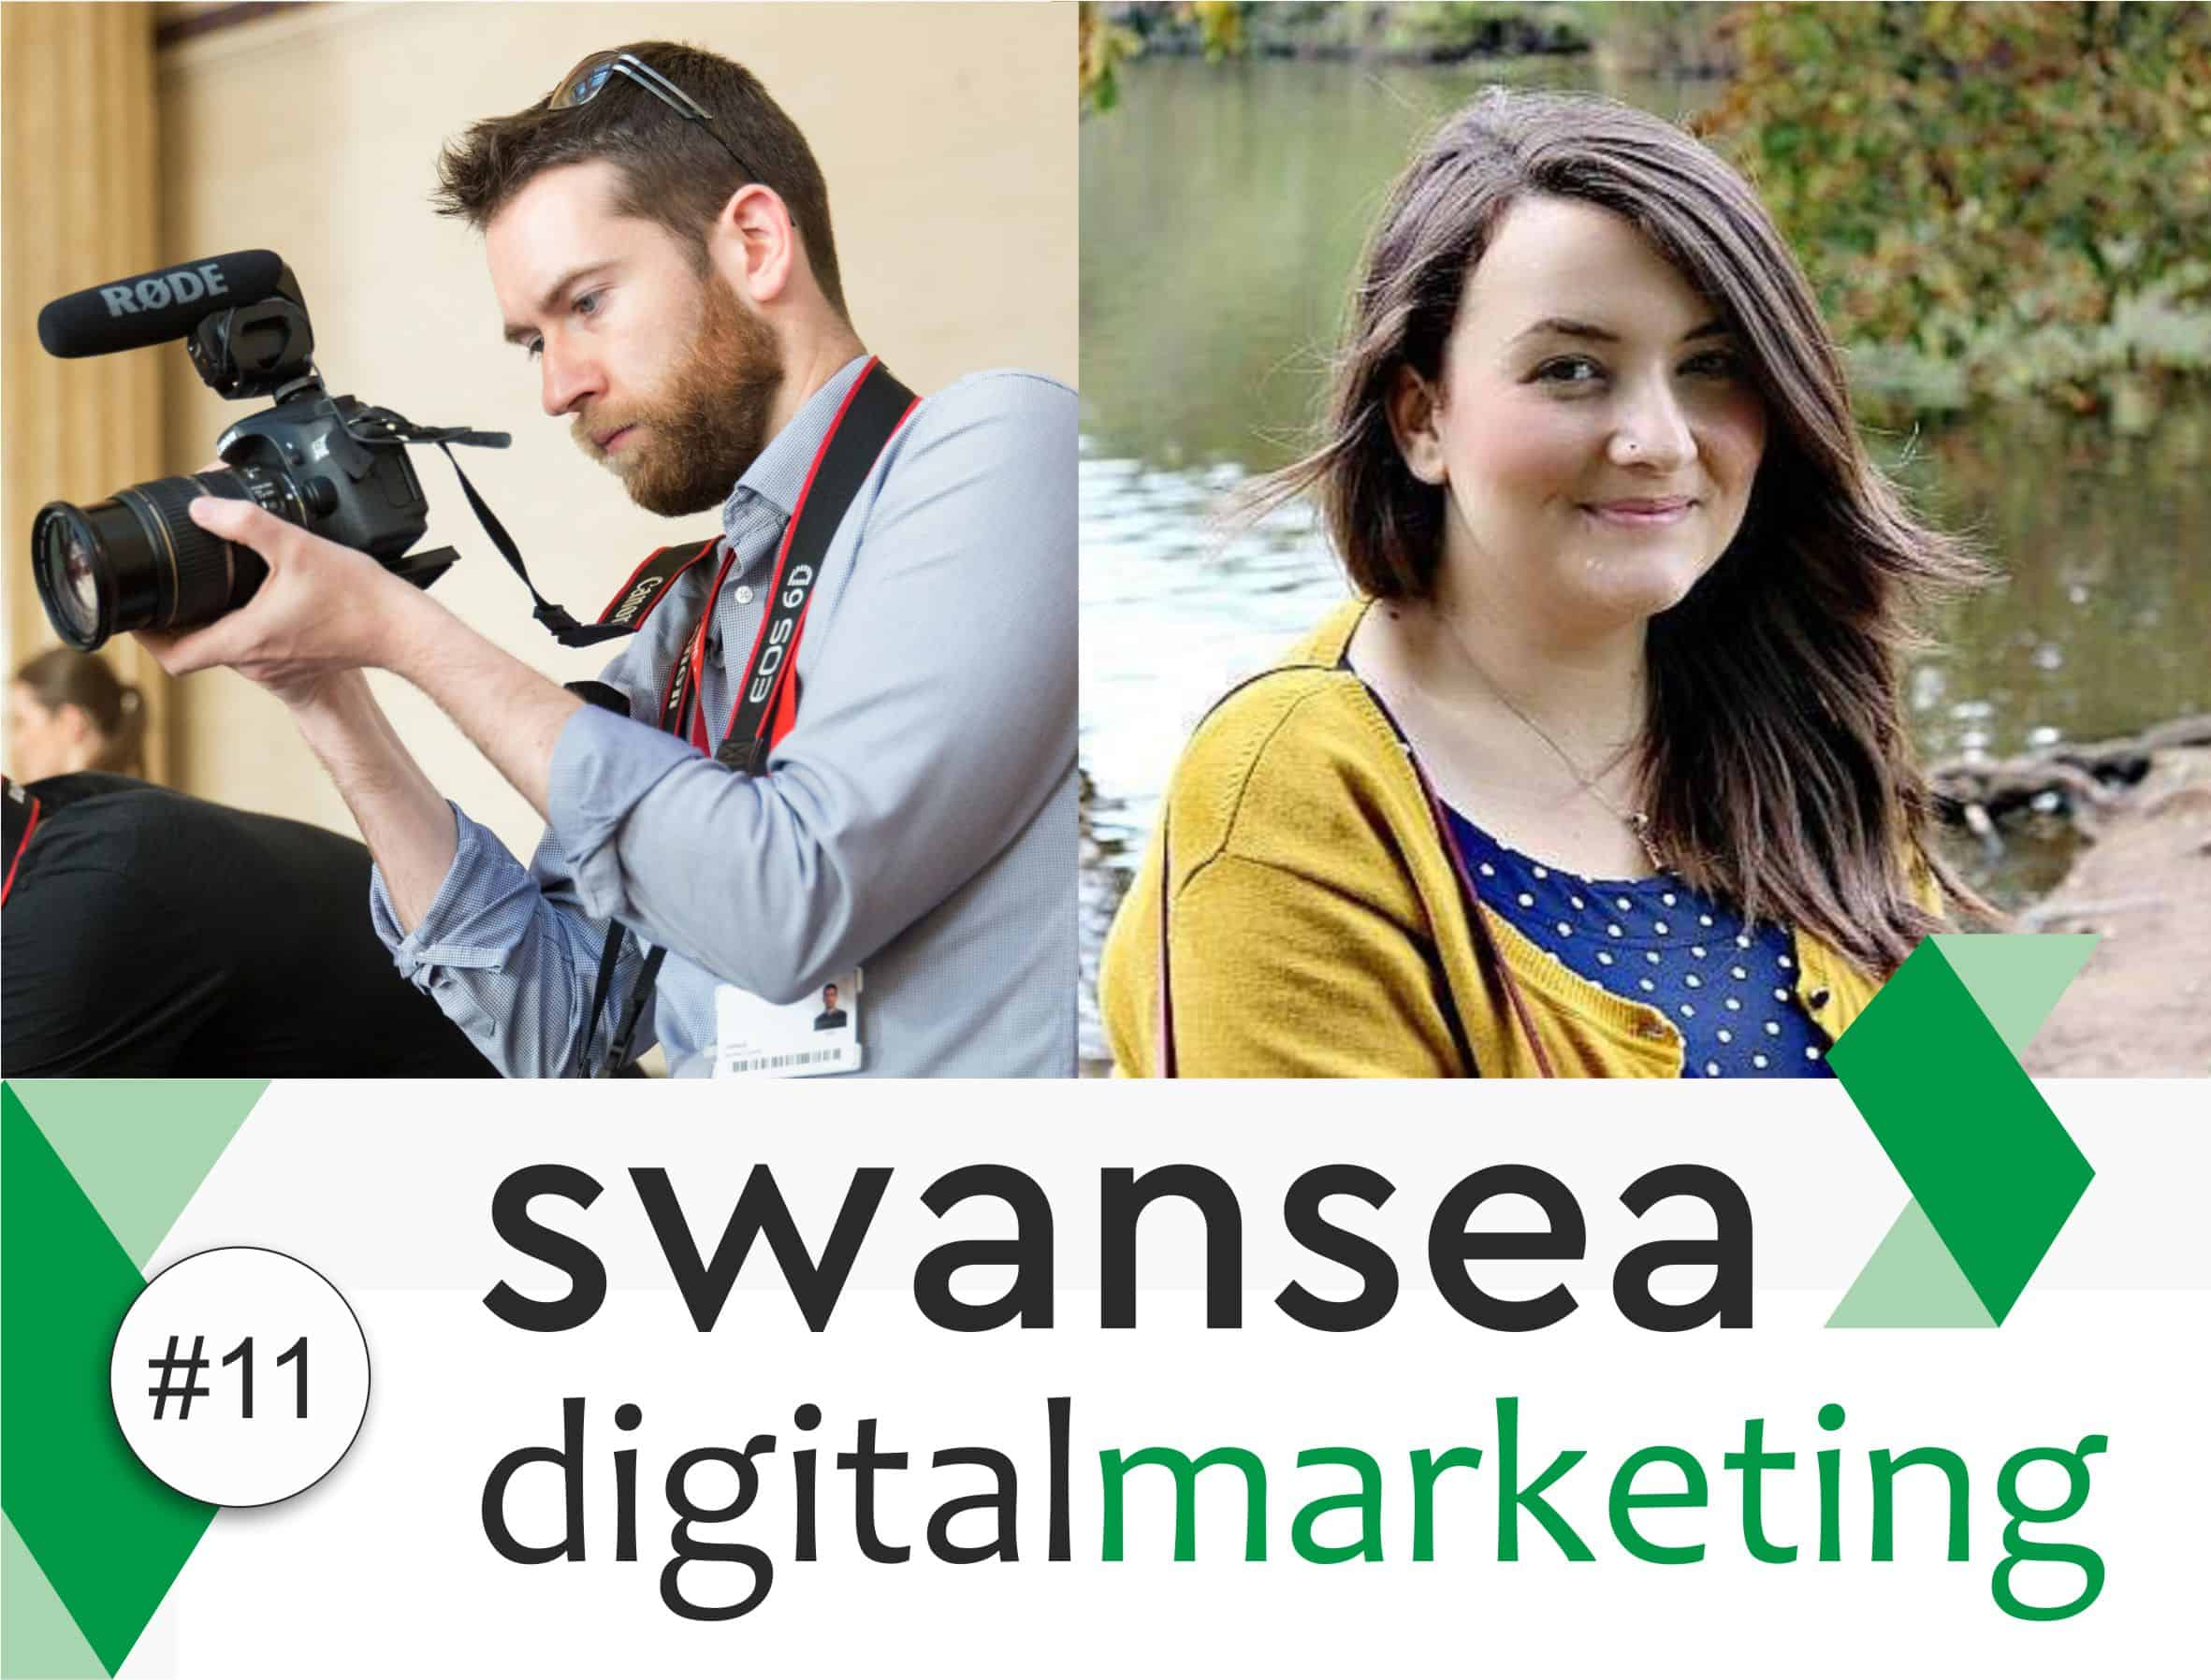 Swansea Digital Marketing & SEO Meetup #6 Speakers